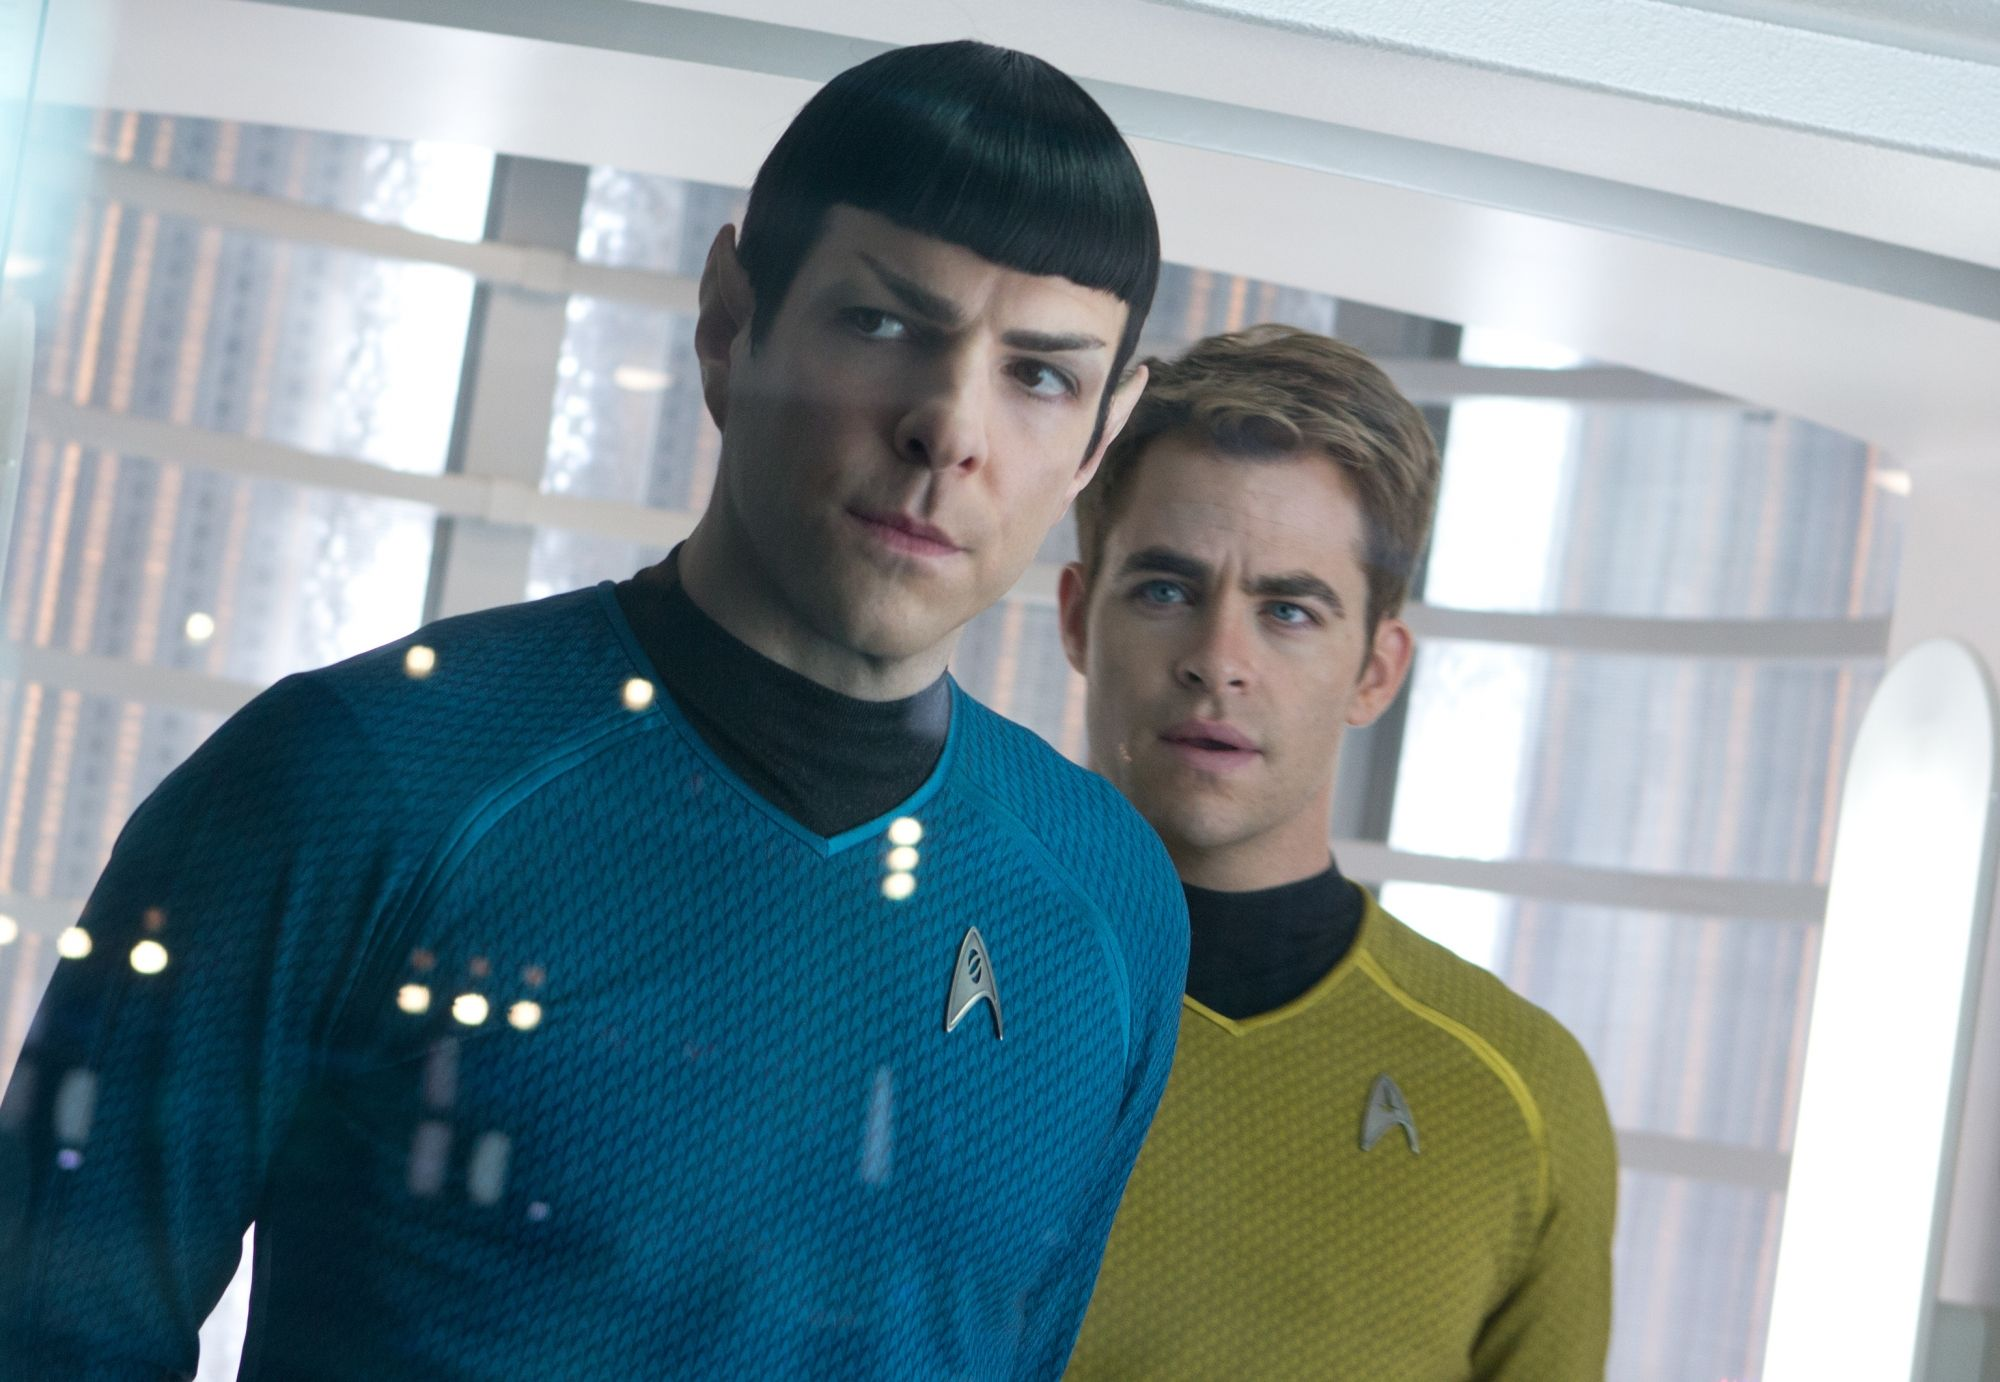 Zachary Quinto as Spock and Chris Pine as Captain Jim Kirk on 'Star Trek: Into Darkness' (2013)